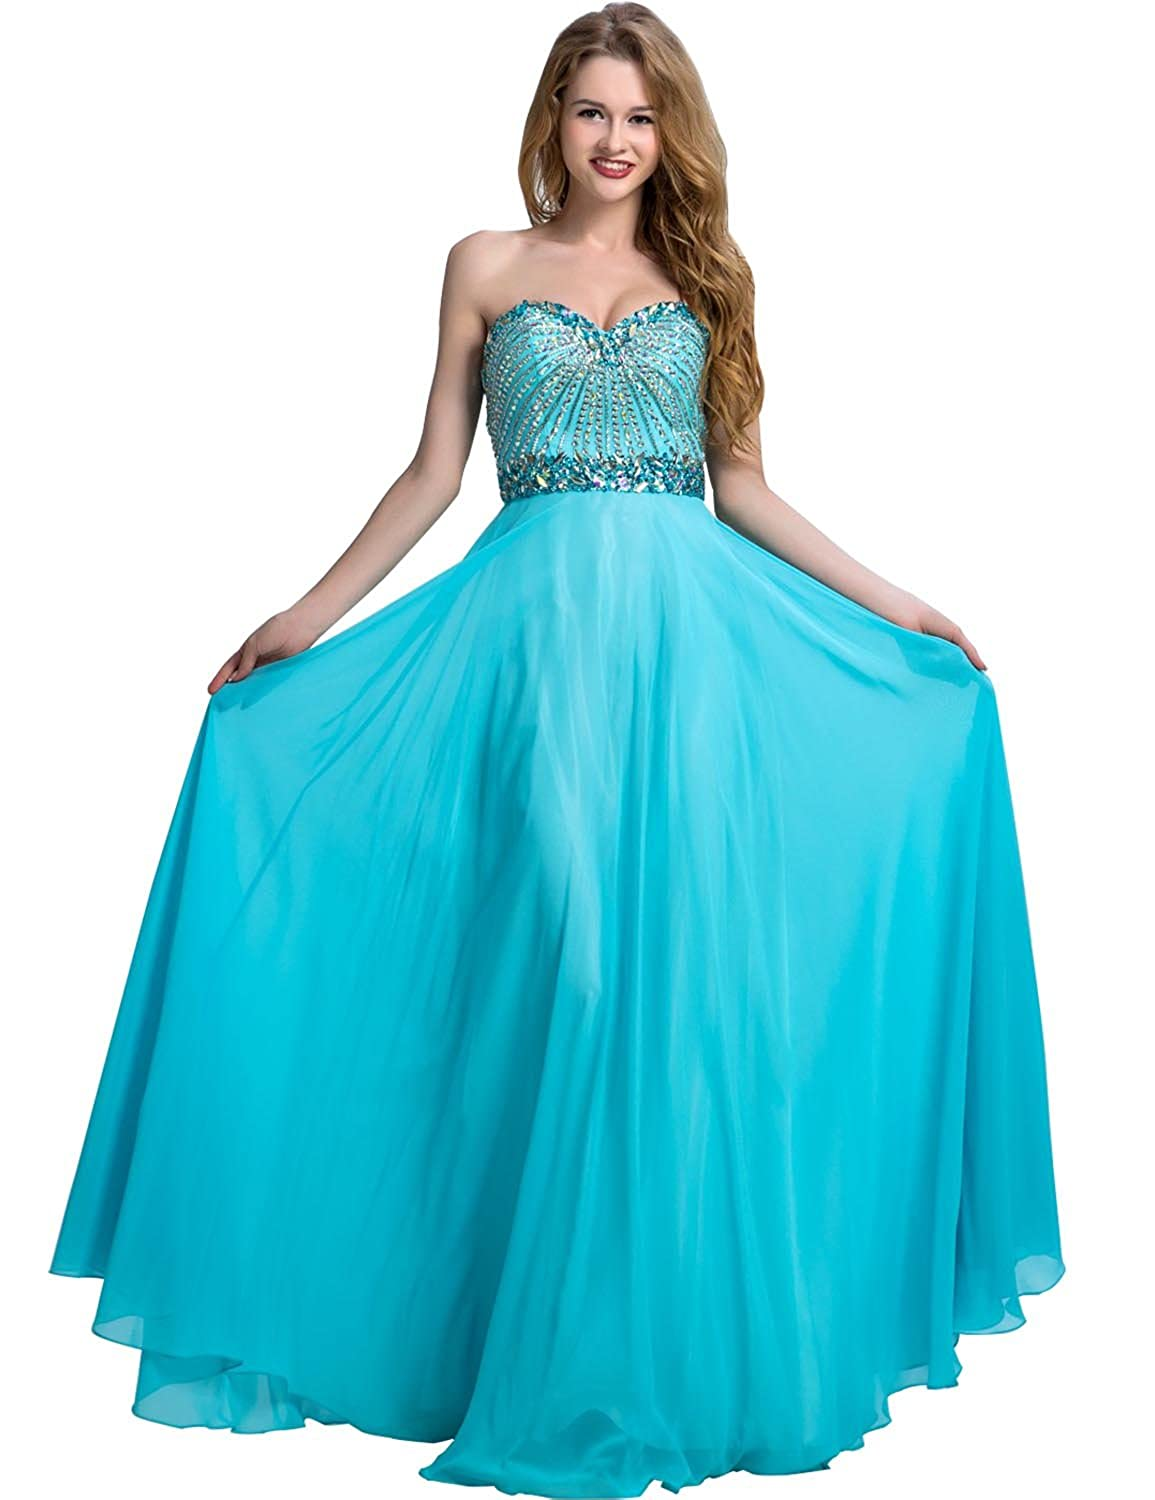 Clearbridal Women's Turquoise Sweetheart Prom Evening Dress Backless Long Formal Bridesmaid Gowns with Crystal LX095